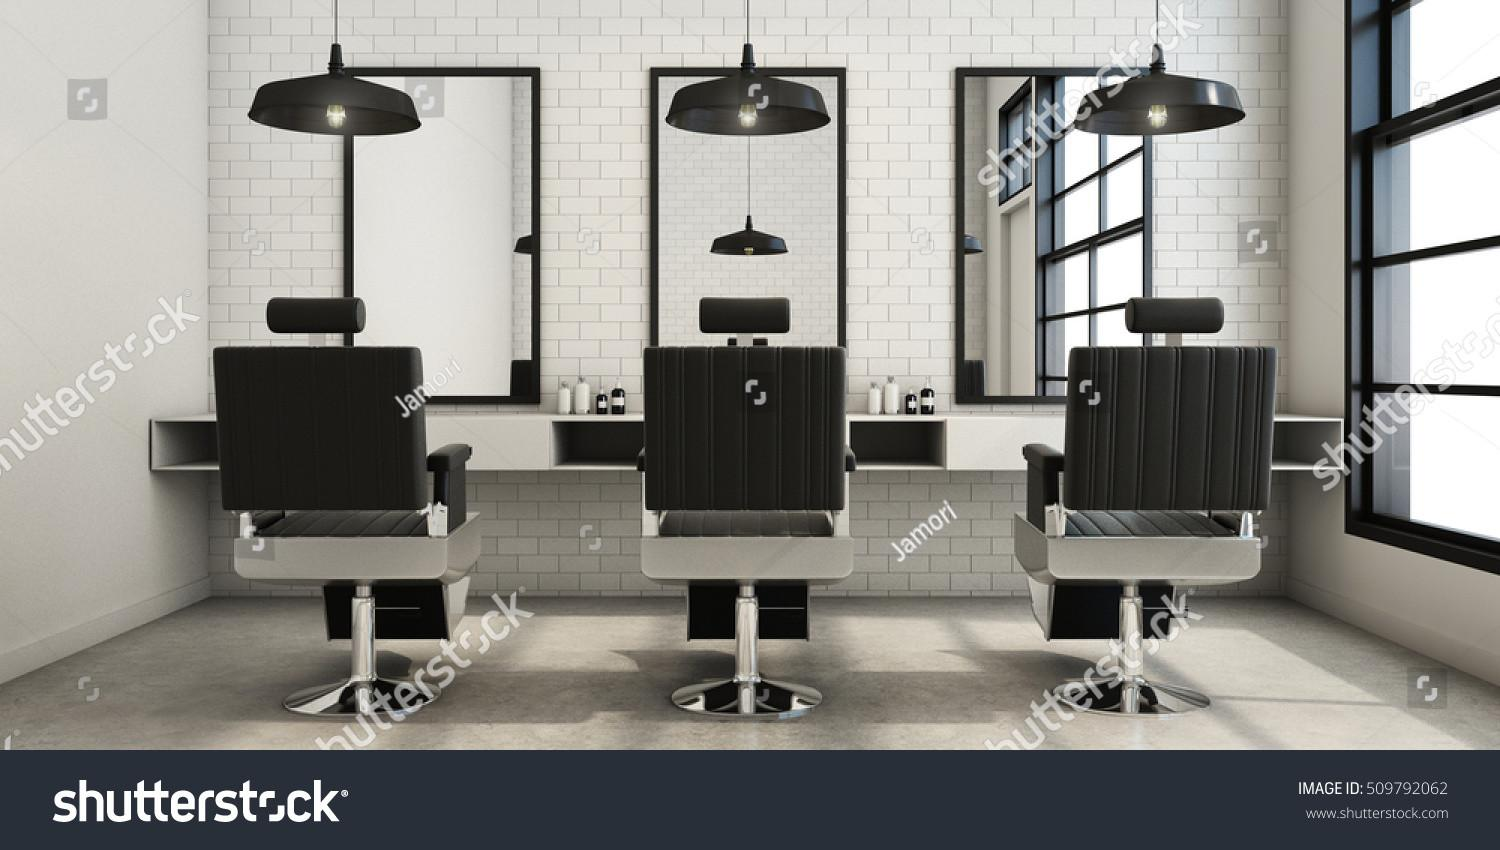 Barber Shop Modern Loft Design Stock Illustration